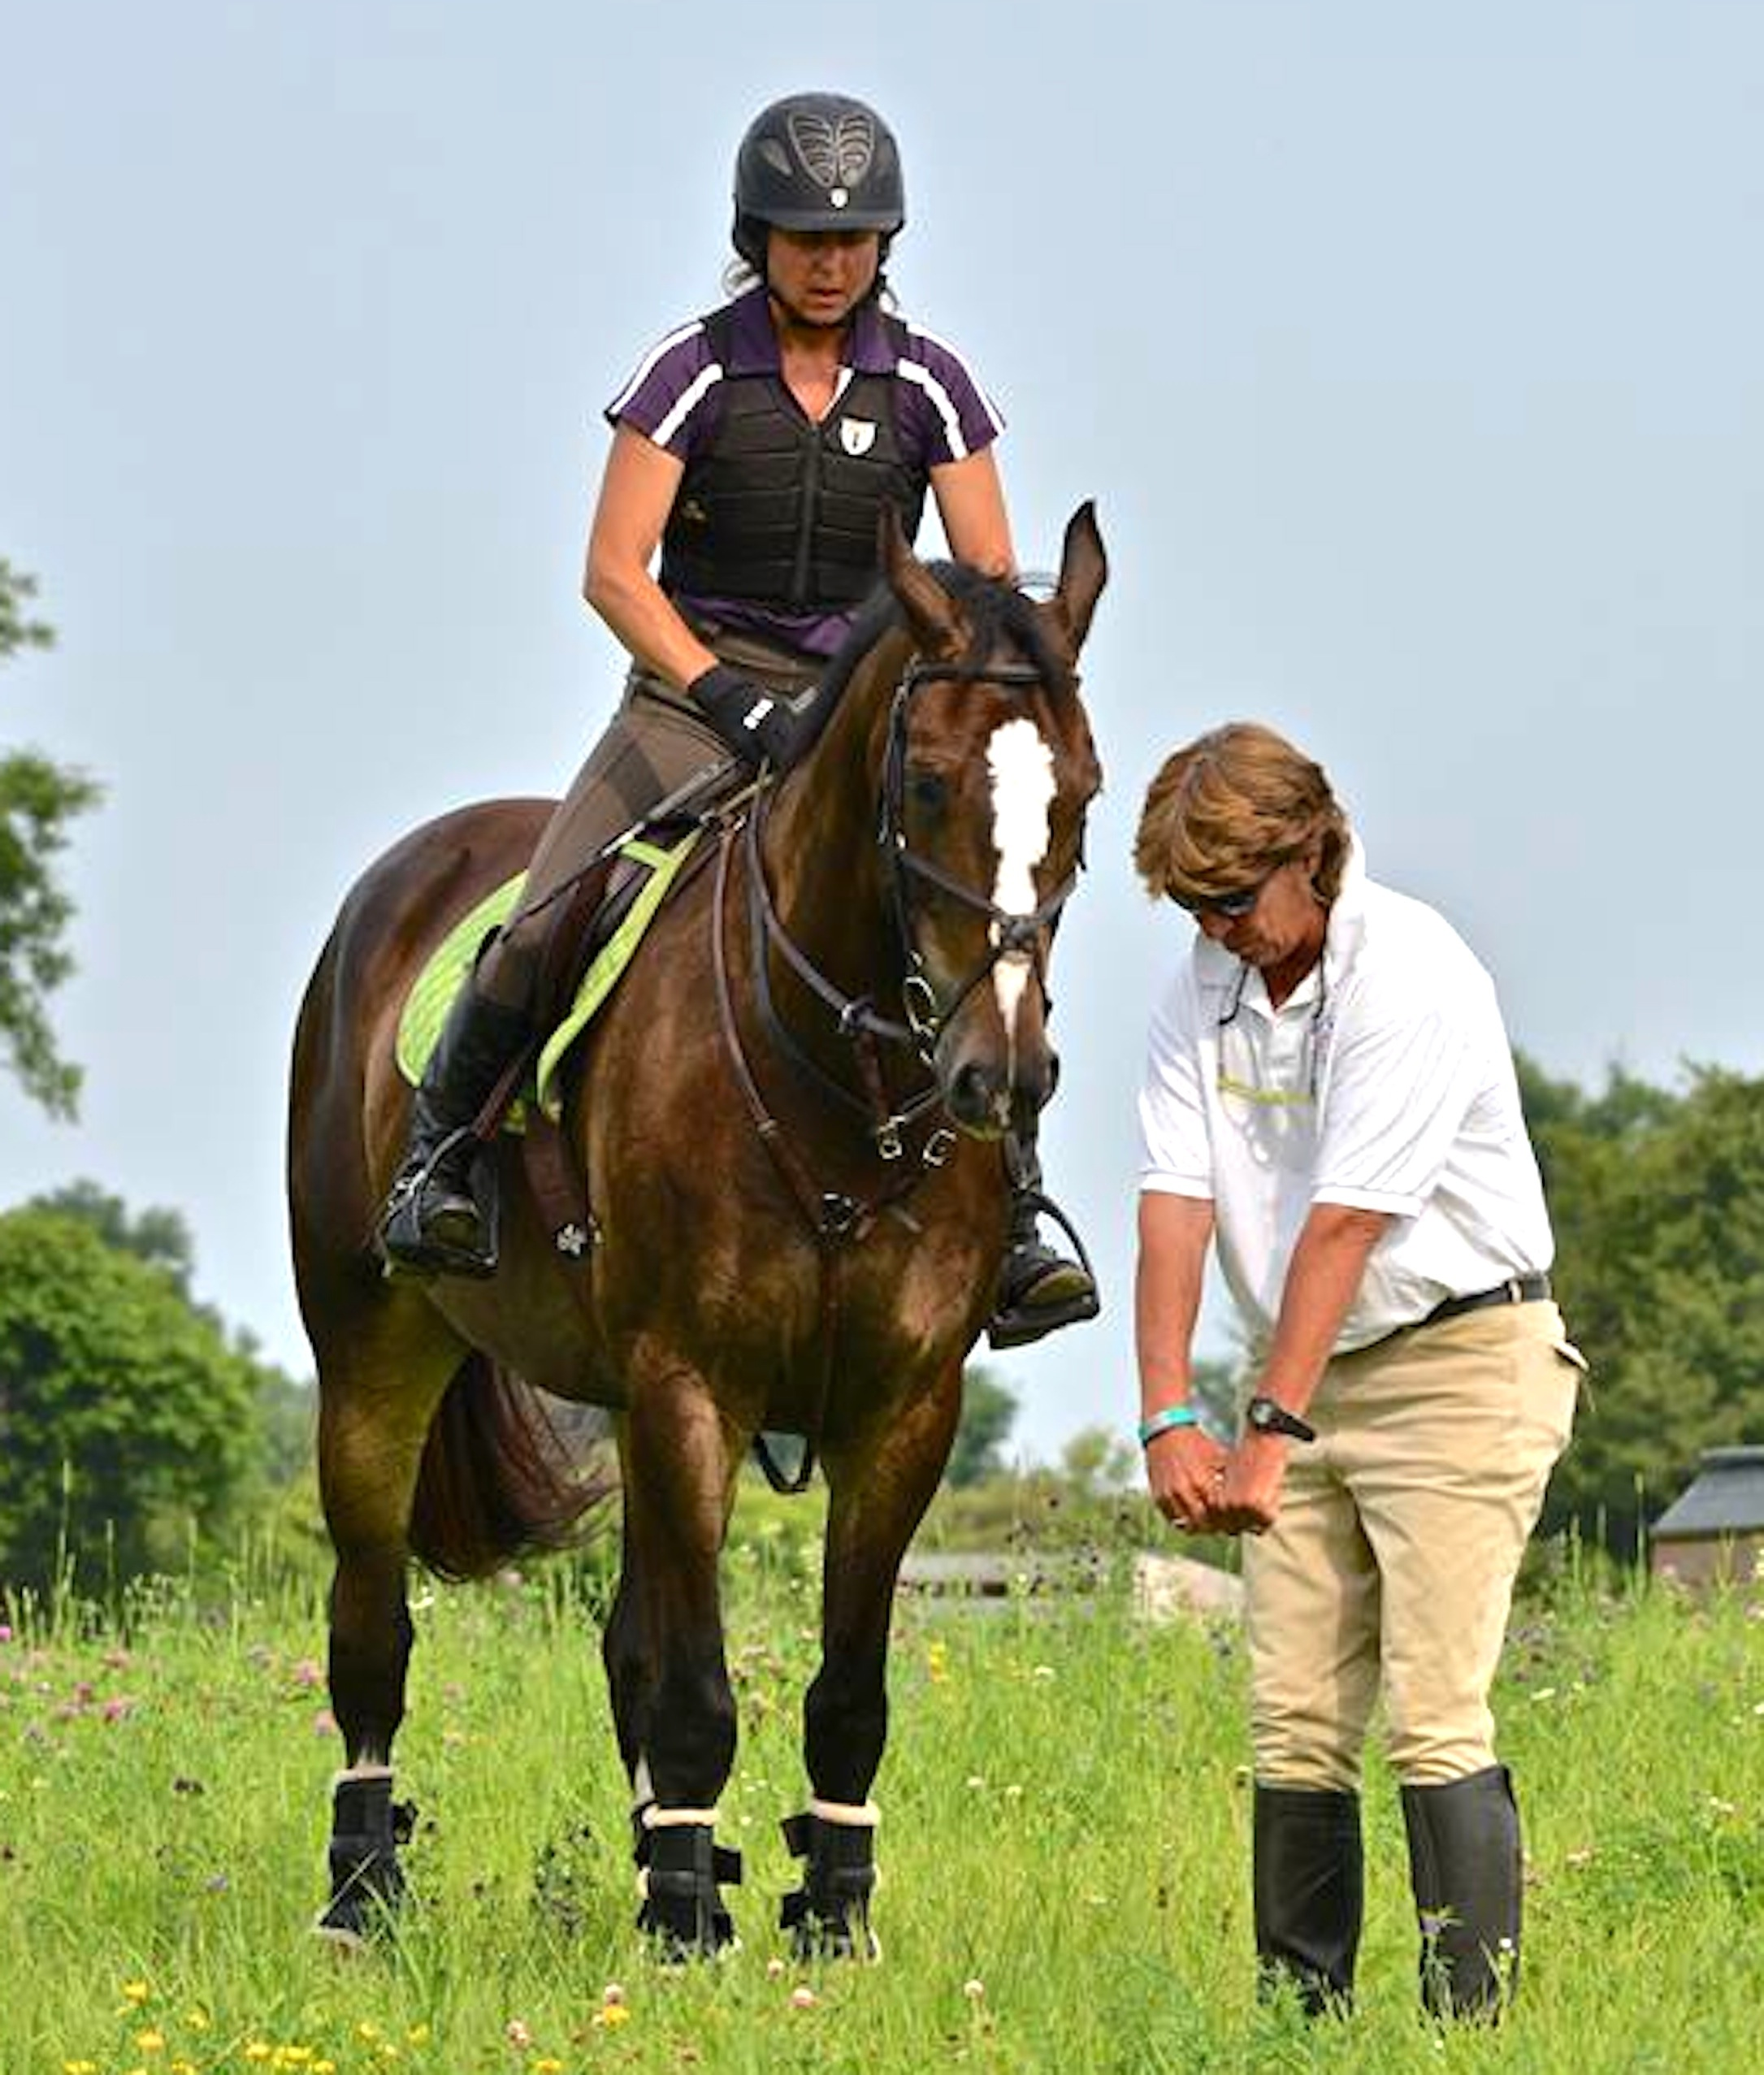 Cathy coaches Tamara Toro aboard Oliver Darby at the 2014 Sprucehaven Farm eventing clinic in Canada. (Photo by Ian Woodley)